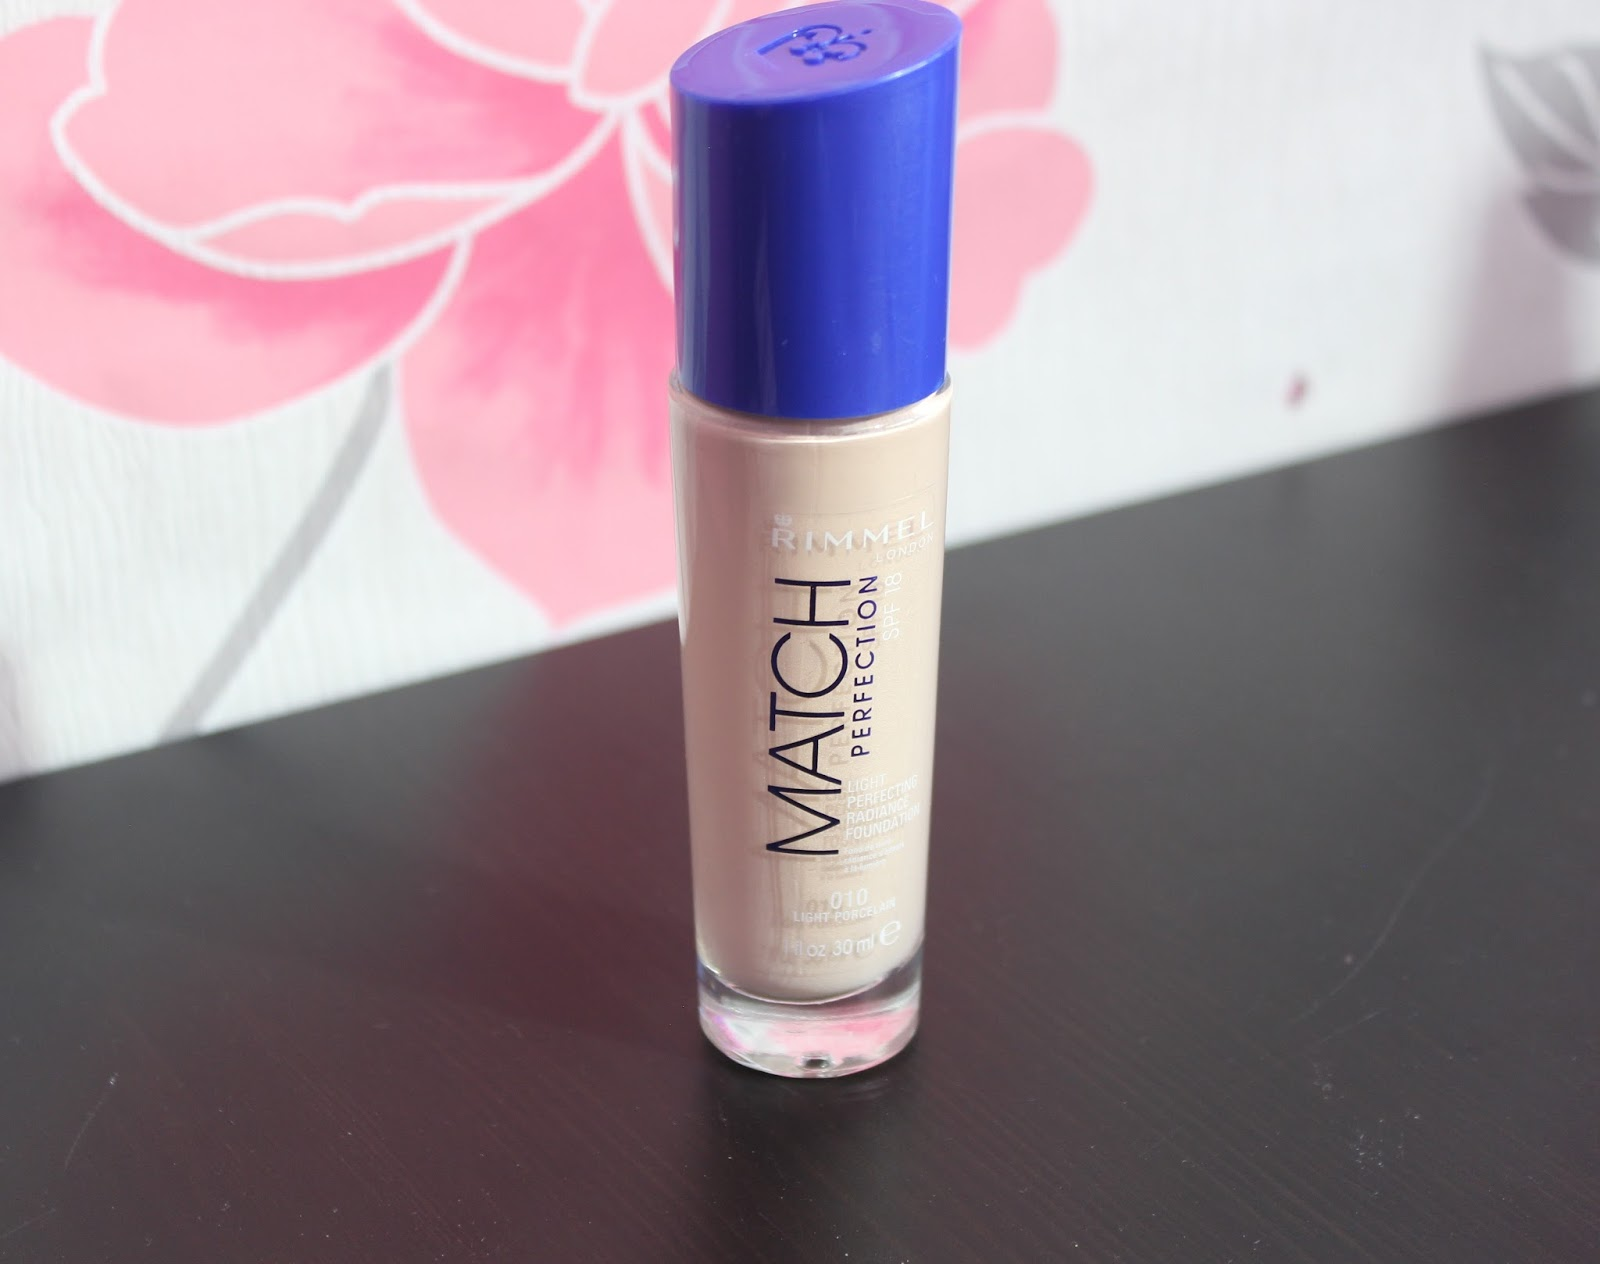 Rimmel Match Perfection foundation in 010 Light Porcelain